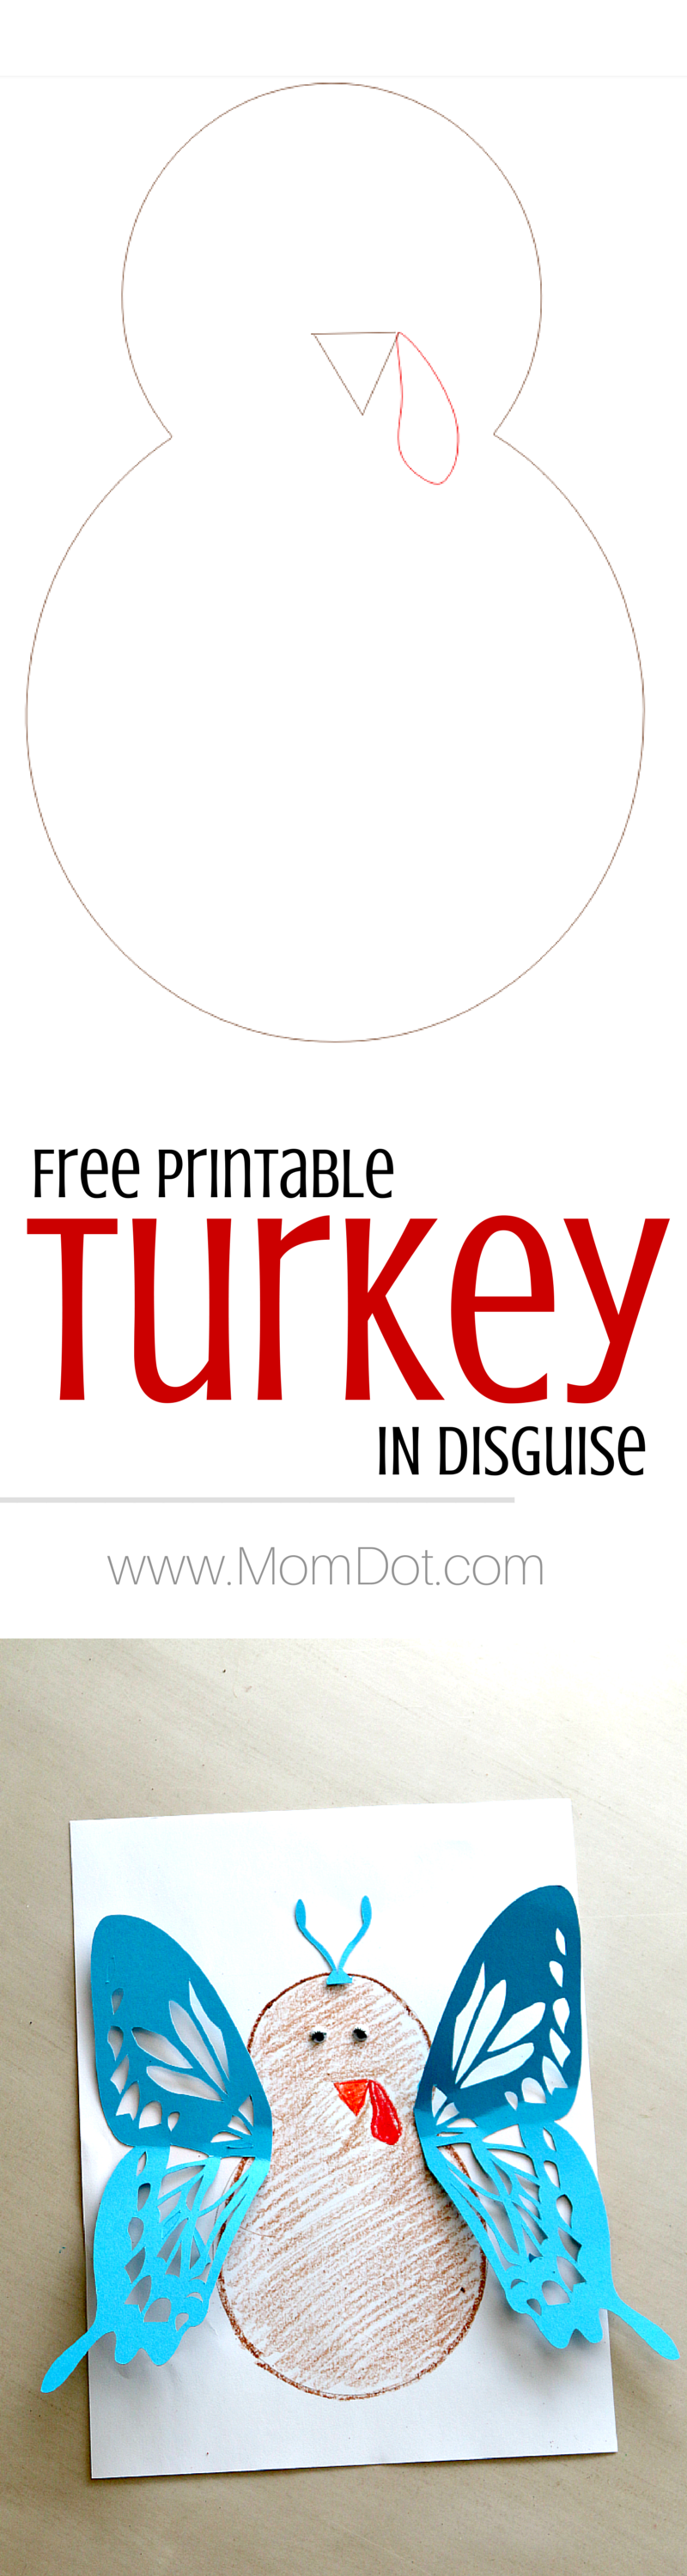 Turkey In Disguise Free Printable Template Free